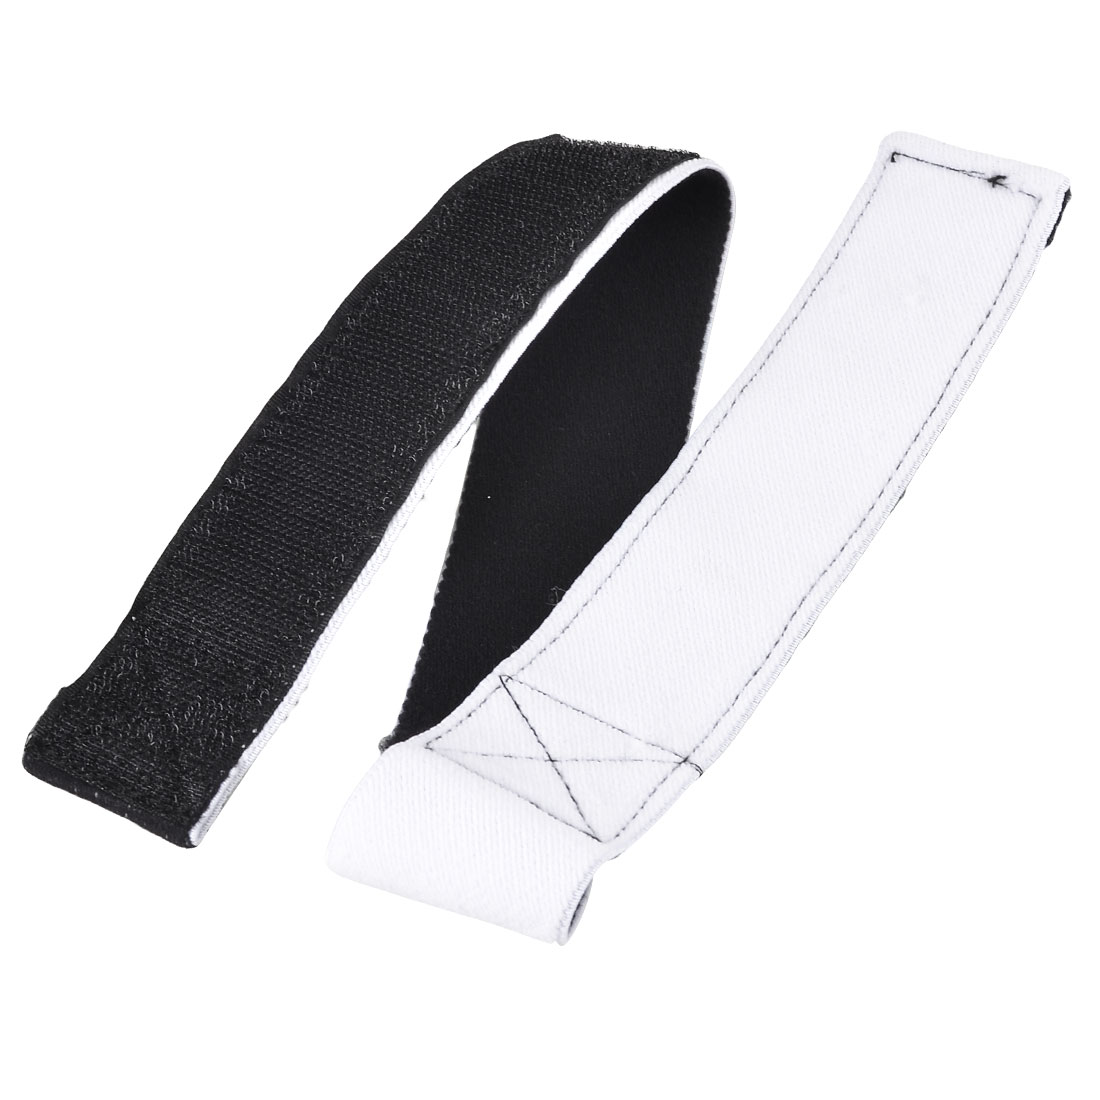 Loop Hook Closure 3 Legged Race Tie Adjustable Stretchy Band Strap Black White